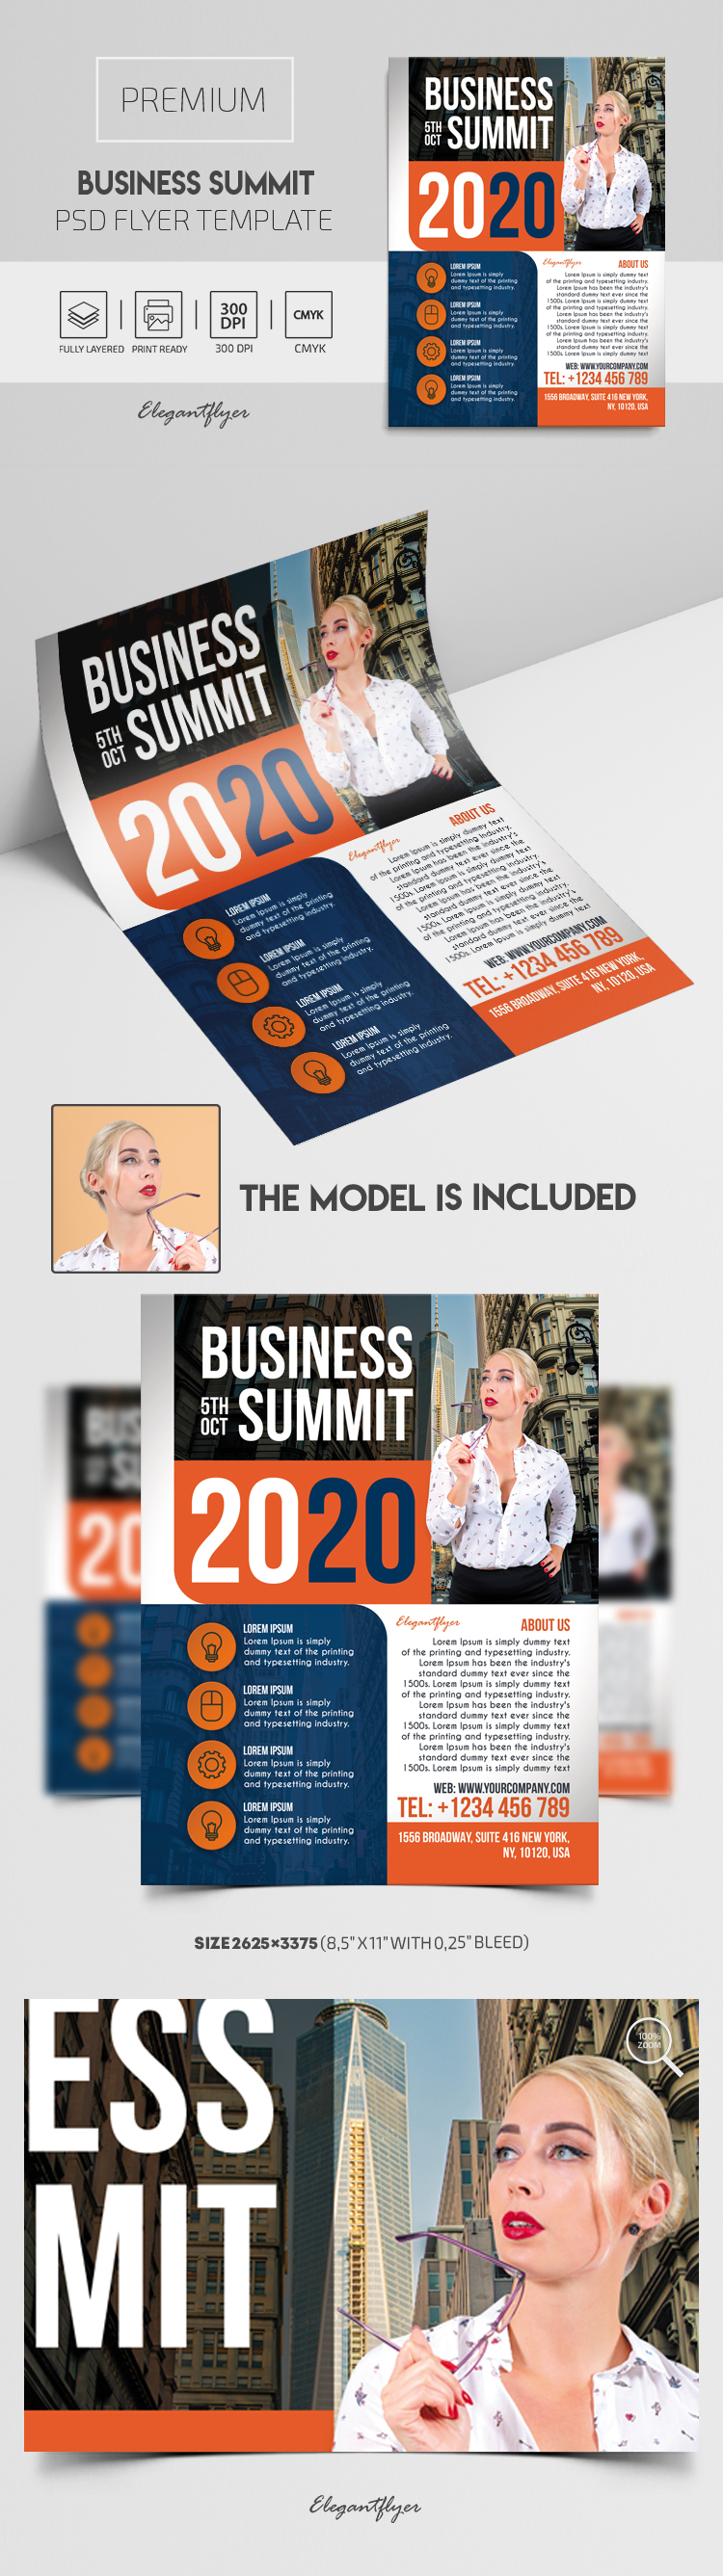 Business Summit – Premium PSD Flyer Template